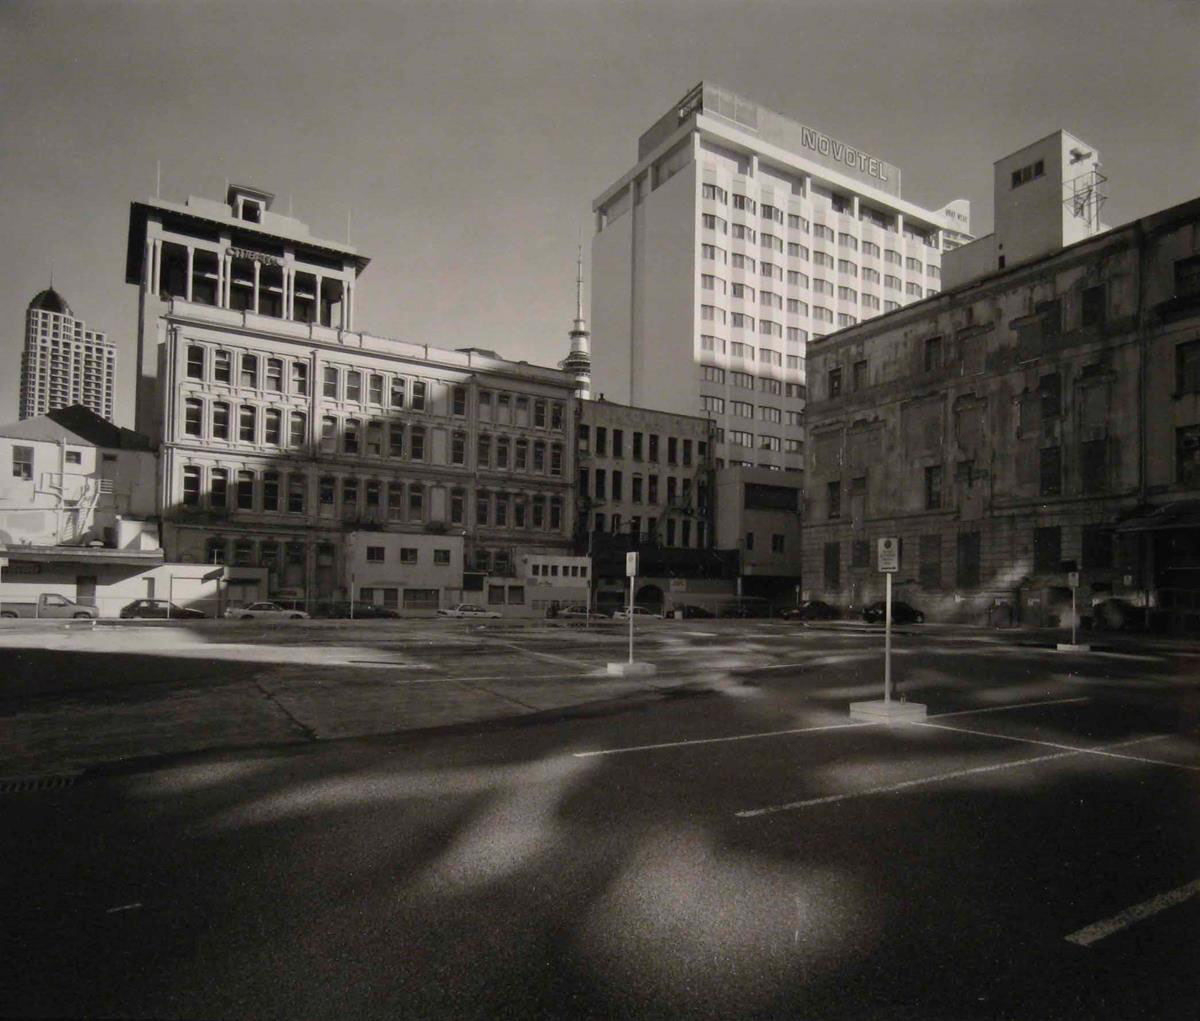 Haruhiko Sameshima,  Temporary carpark, behind central post office, corner Tyler and Commerce Streets, prior to Britomart Transport Centre Development, CBD.  From the series,  Ten Views of Sky Tower,  2001